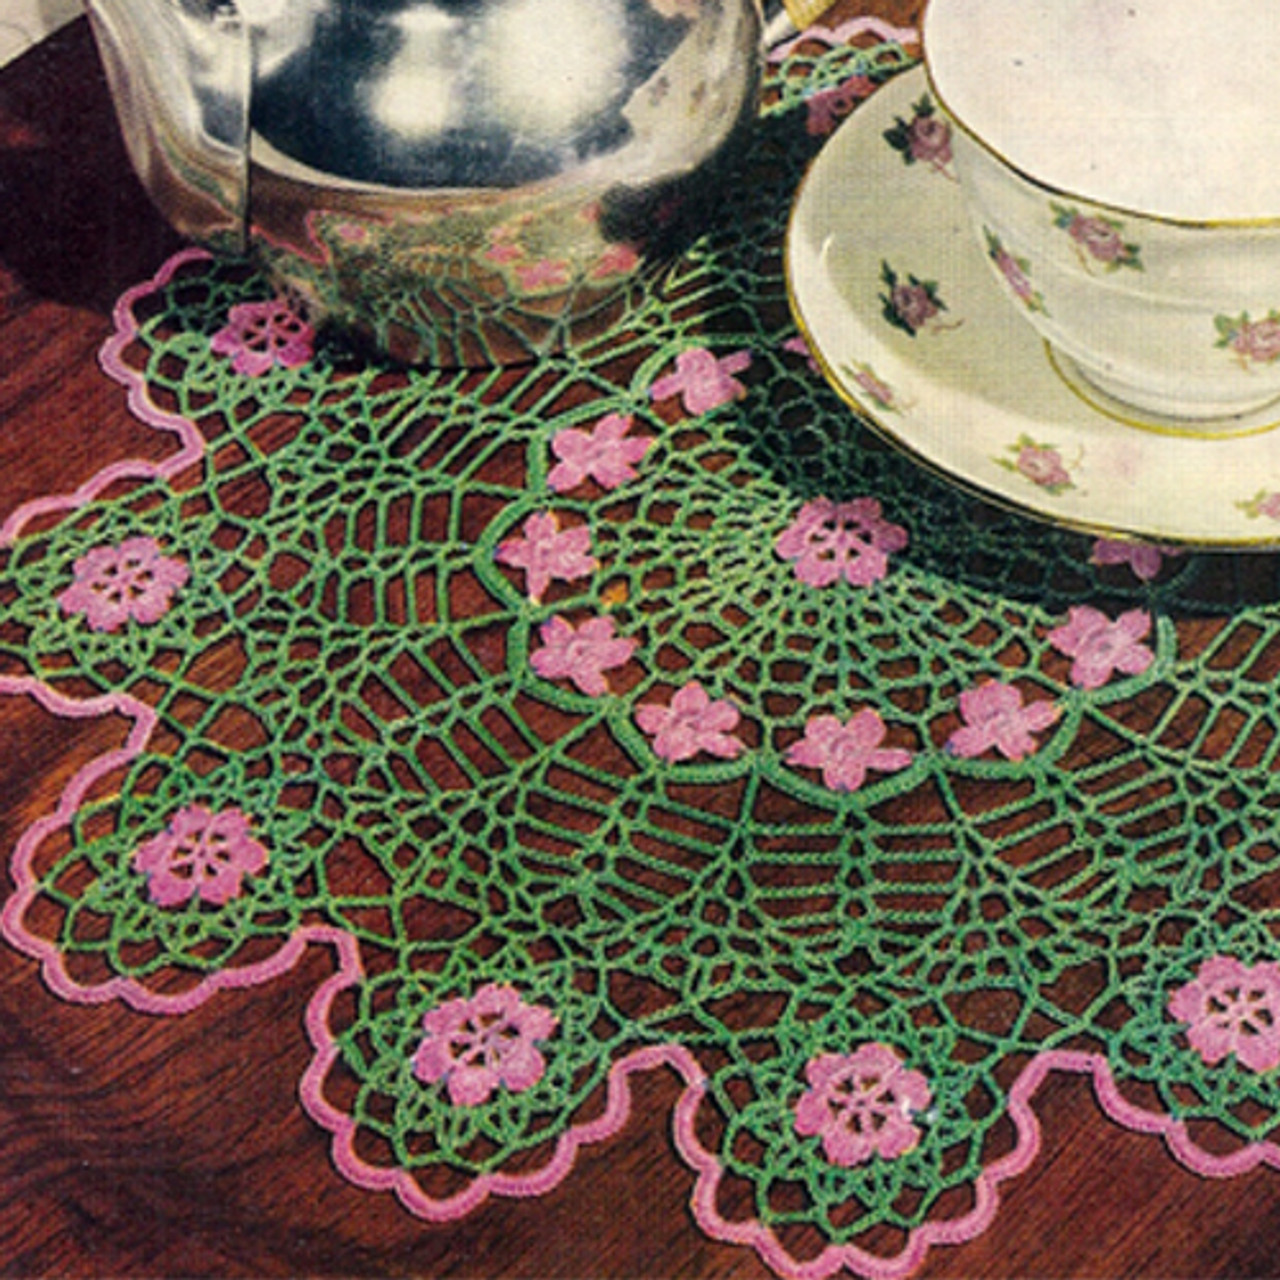 Crocheted Wild Rose Doily Pattern with Scalloped Border